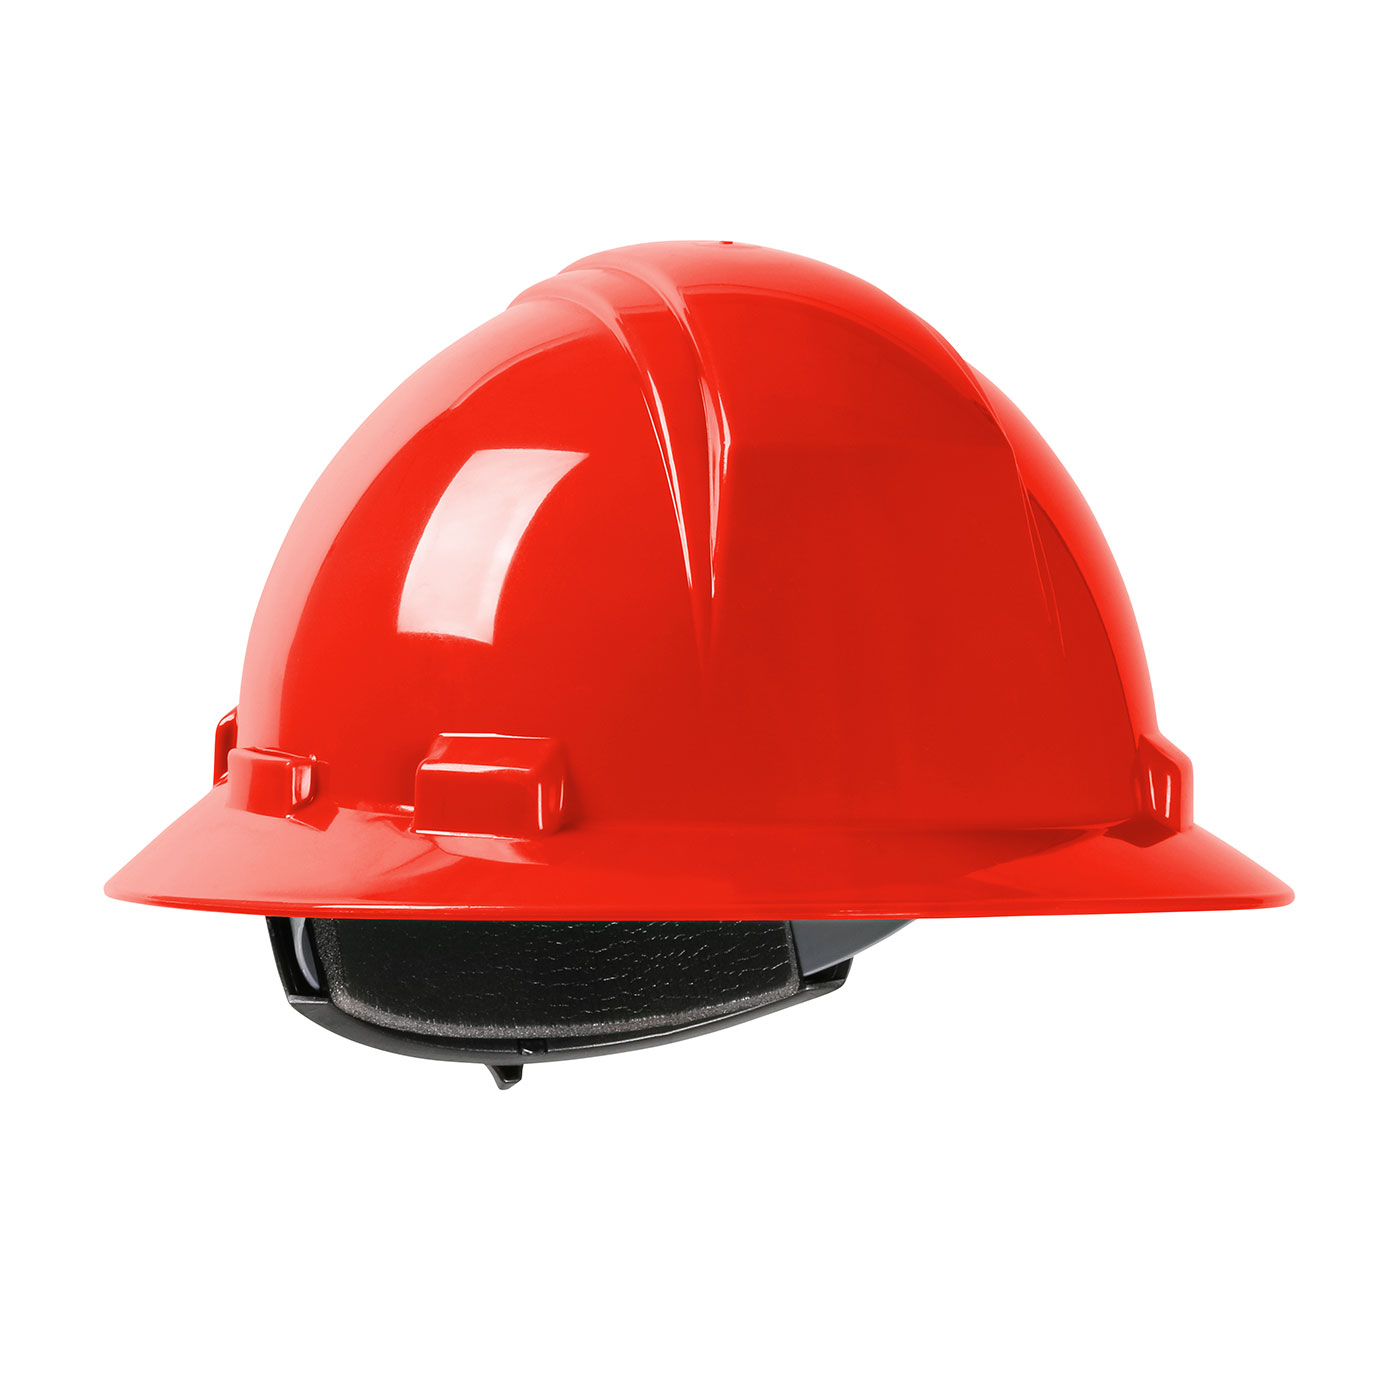 280-HP261R PIP® Dynamic Kilimanjaro™ Full Brim Hard Hat with HDPE Shell, 4-Point Textile Suspension and Wheel Ratchet Adjustment - Red